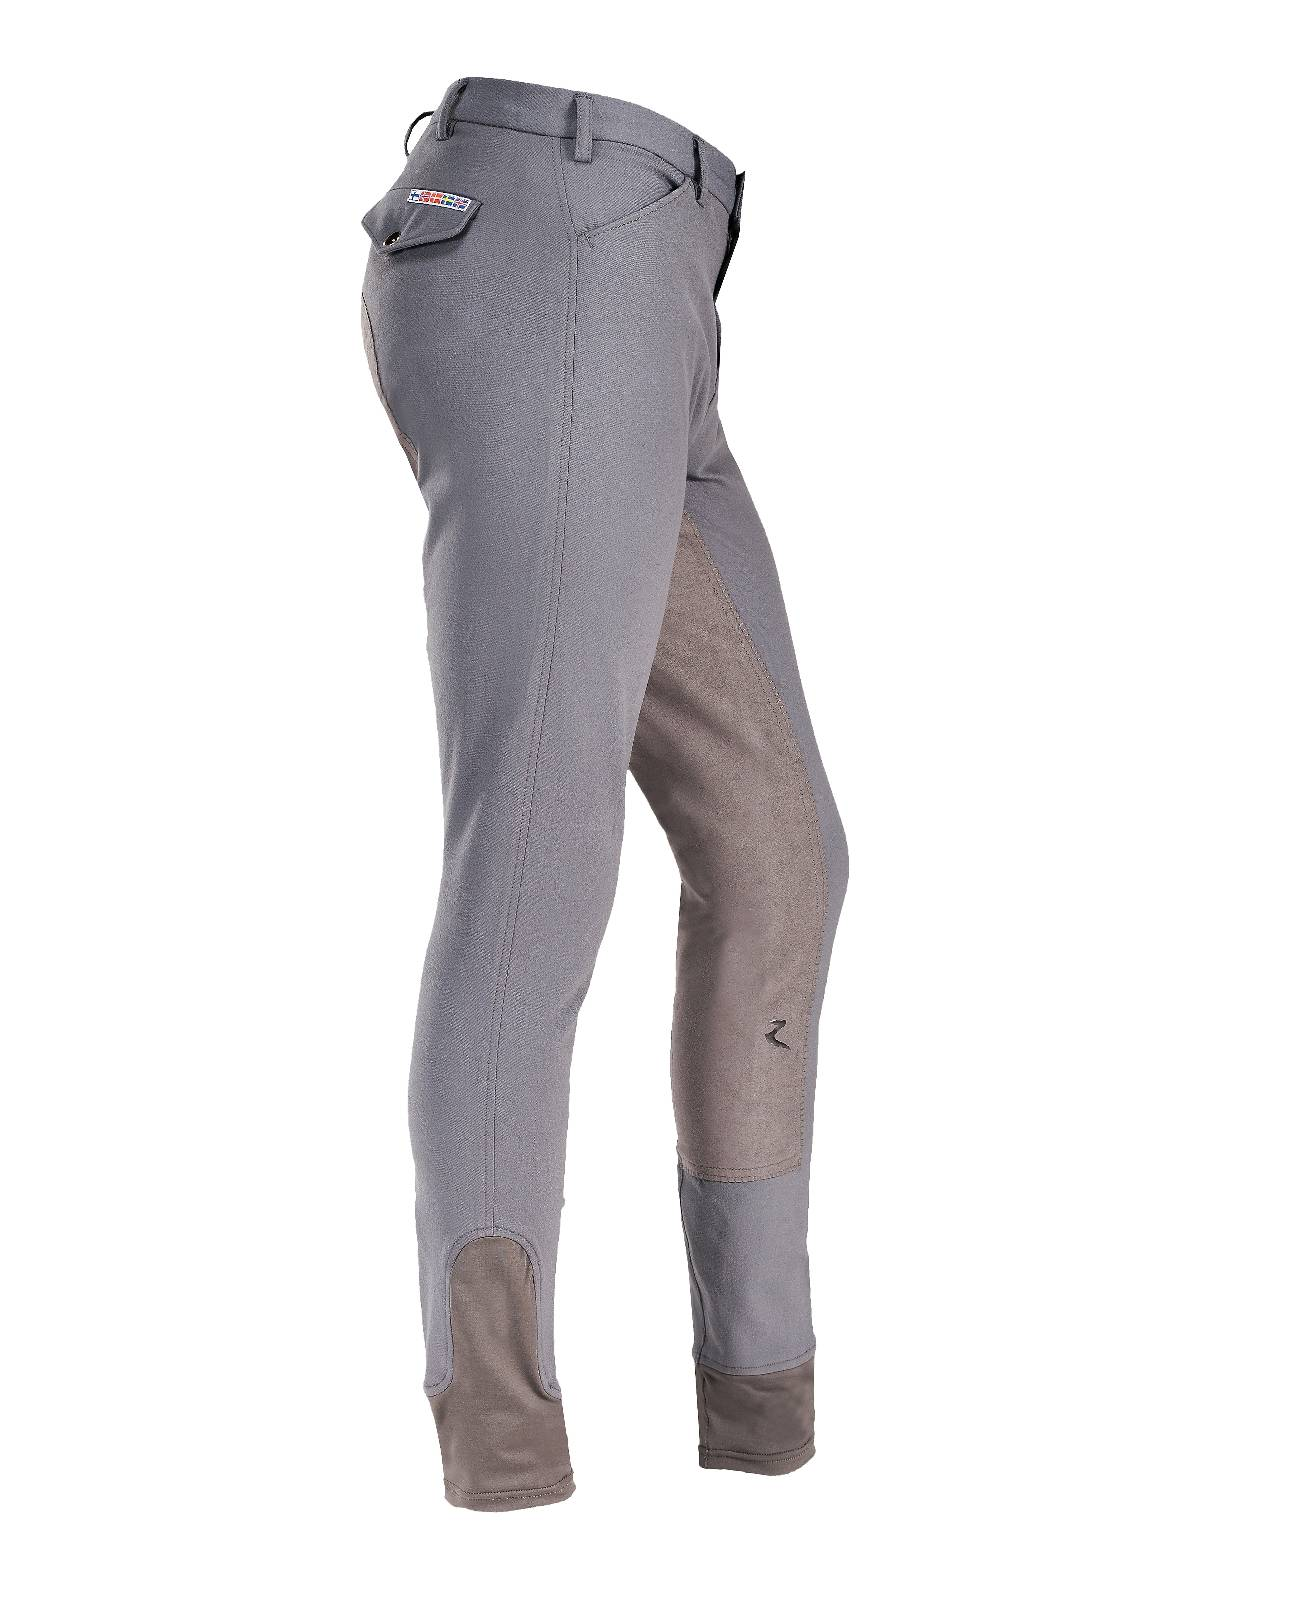 Horze Grand Prix Extend Men's Full Seat Breeches